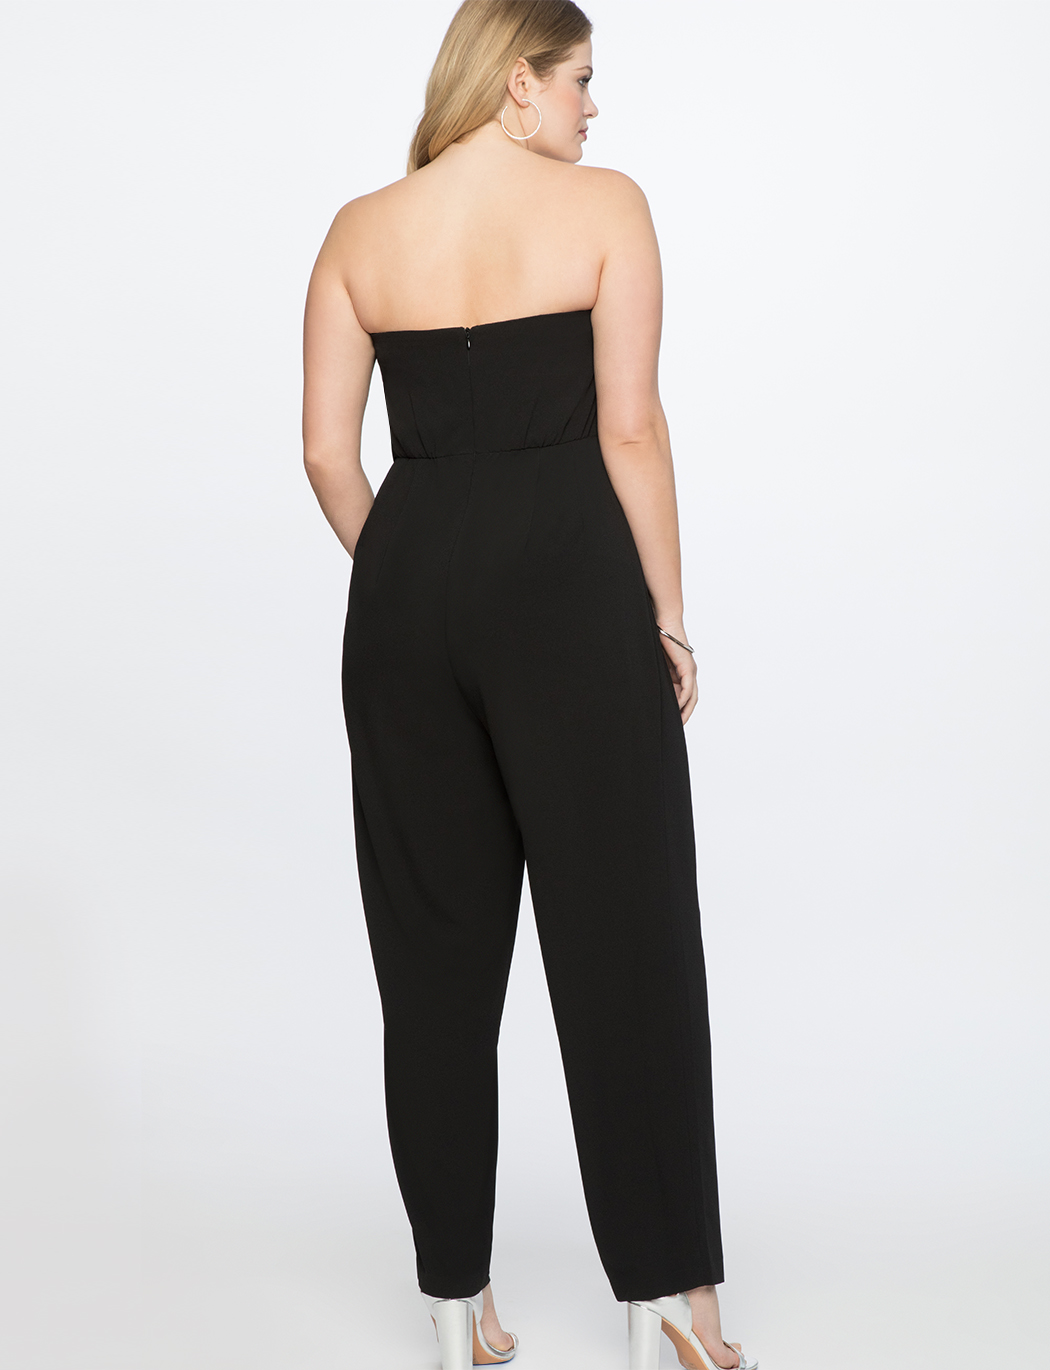 Sweetheart Neckline Wrap Jumpsuit